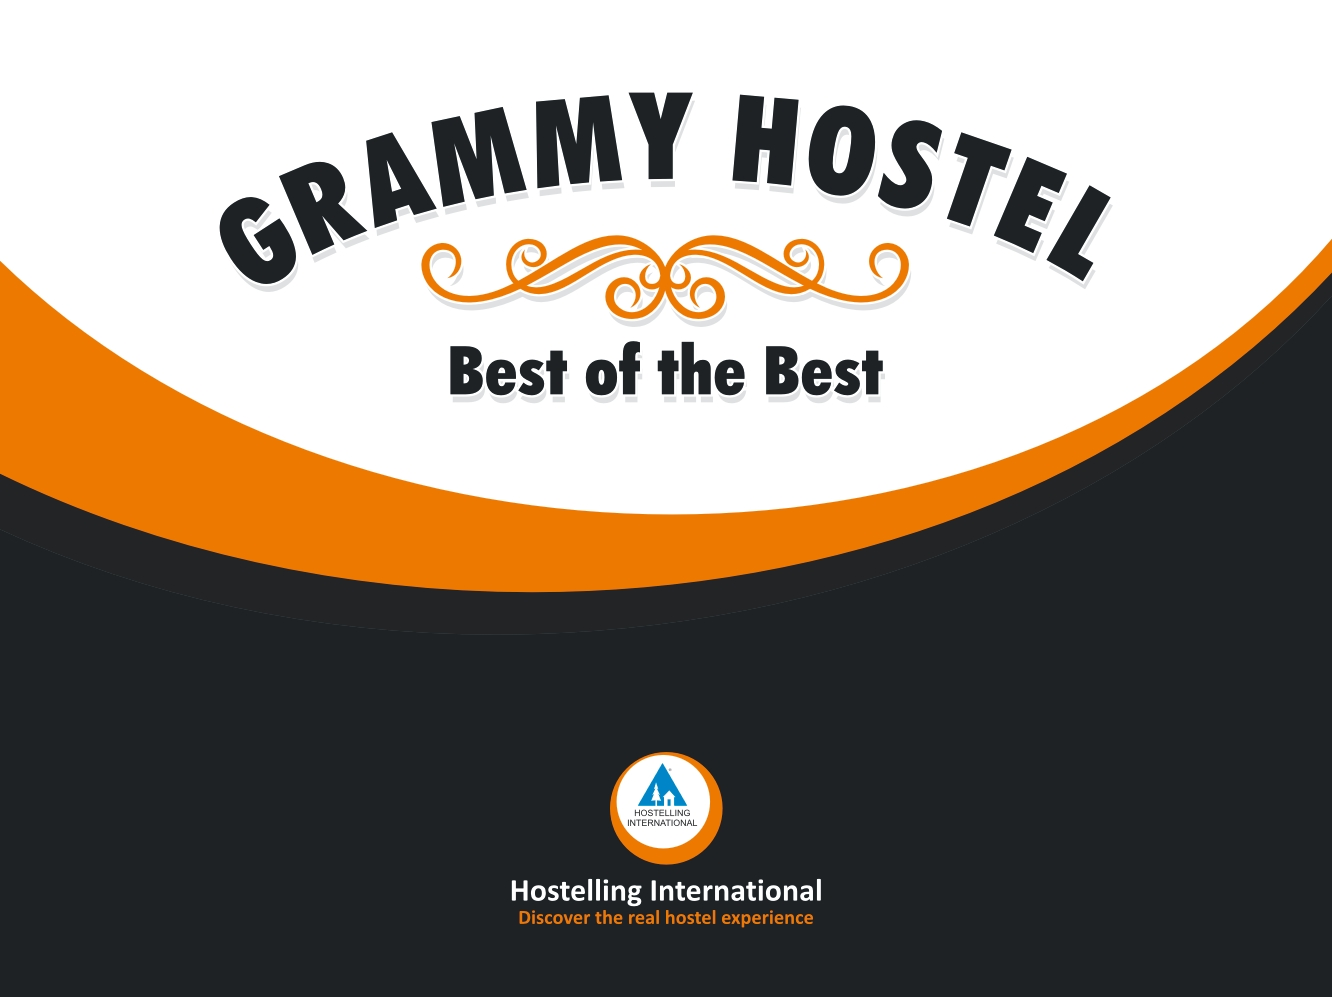 Grammy Hostel's picture